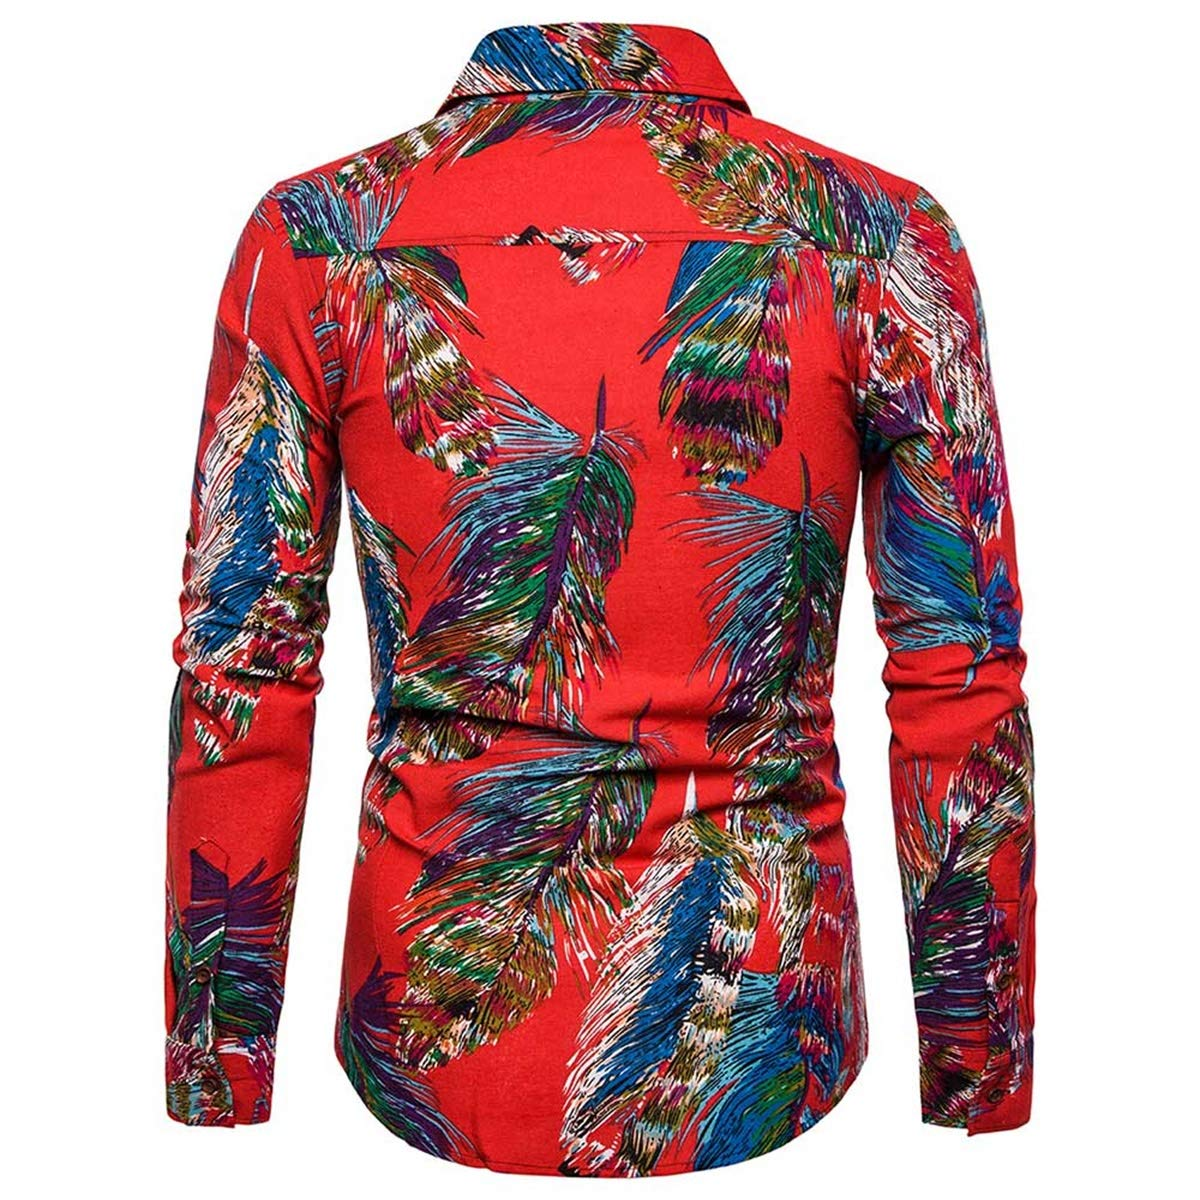 Mens Ethnic Floral Printed Casual Button Down Long Sleeve Shirts